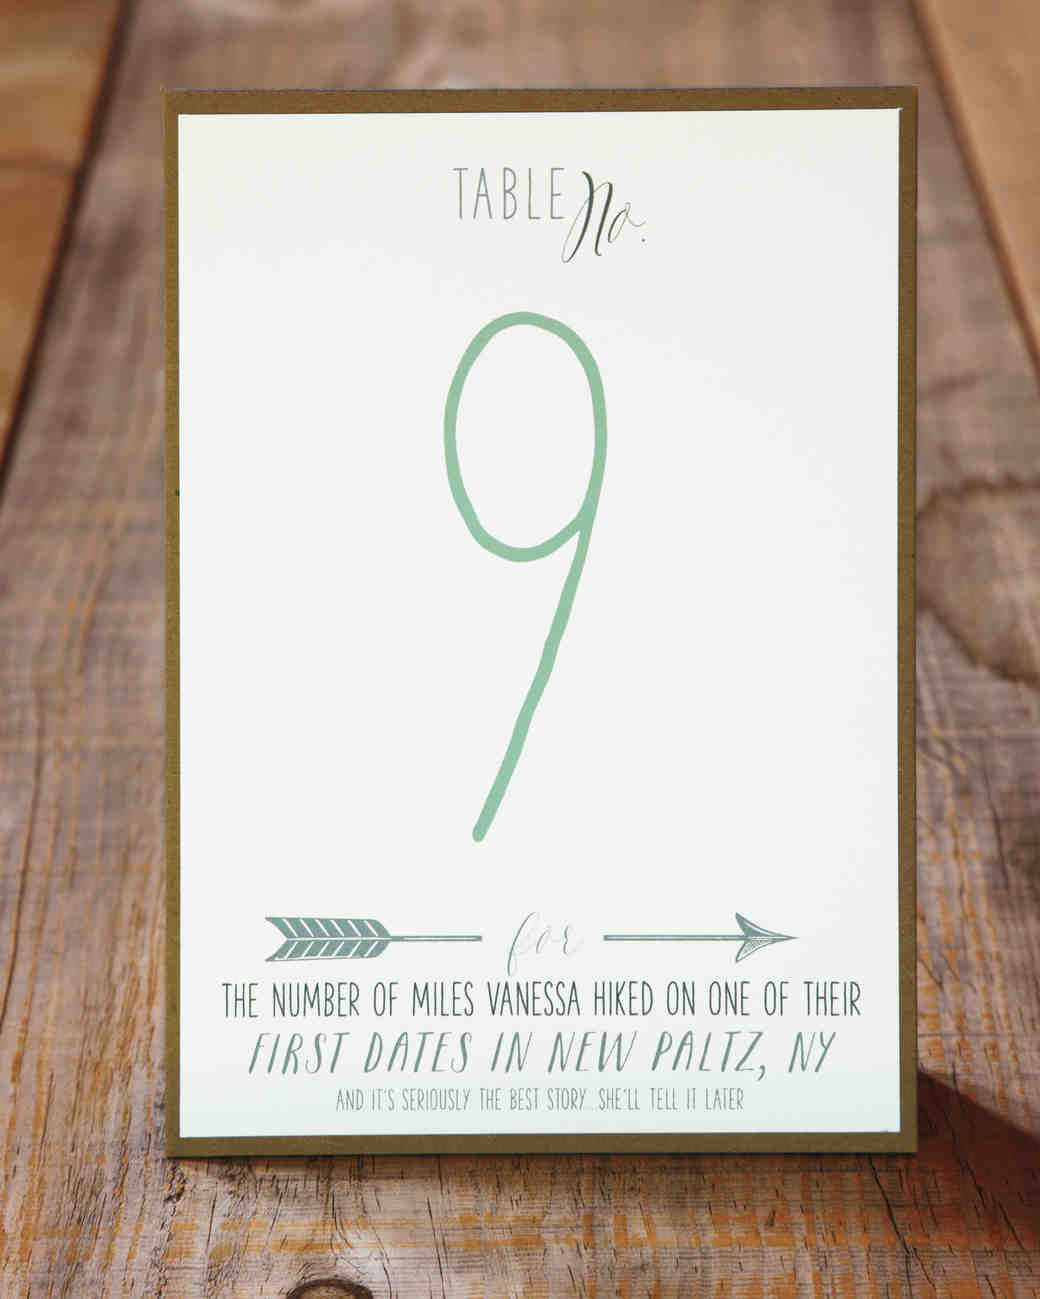 10 Table Numbers From Vanessa and Lauren\'s Wedding That Add Up to ...